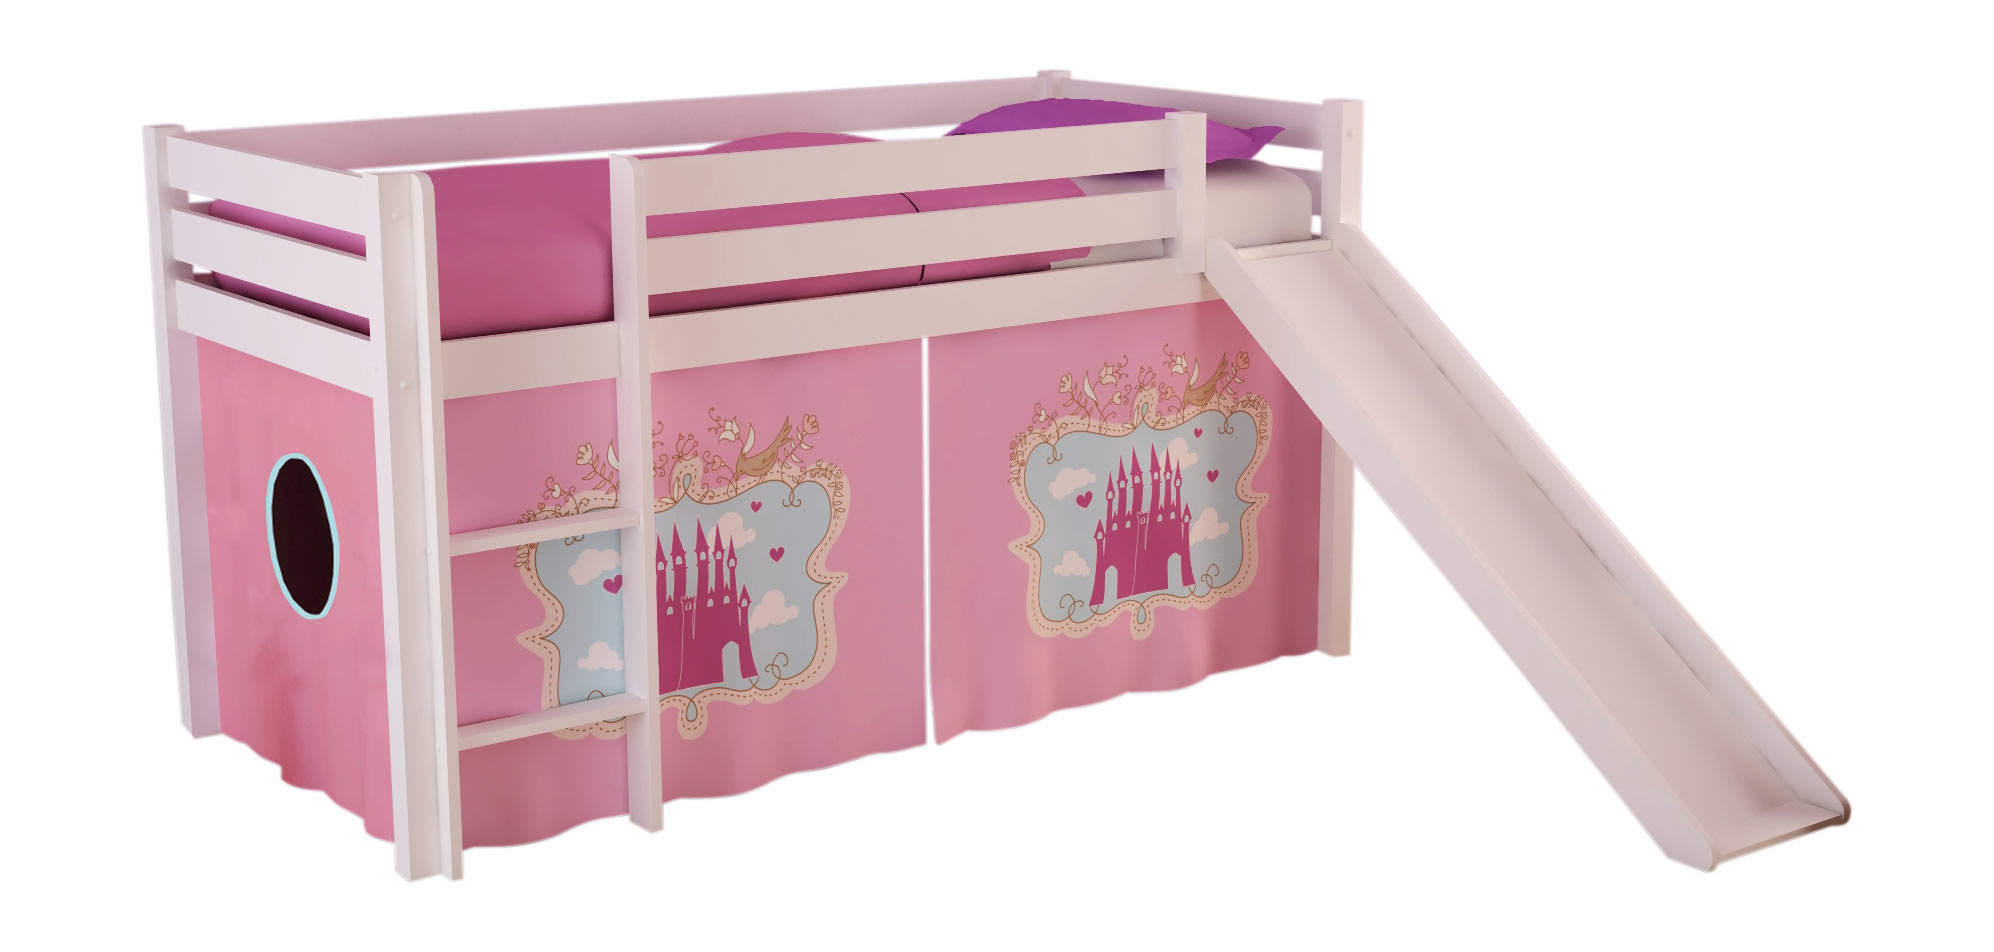 Lit mezzanine enfant moderne pin massif Magic